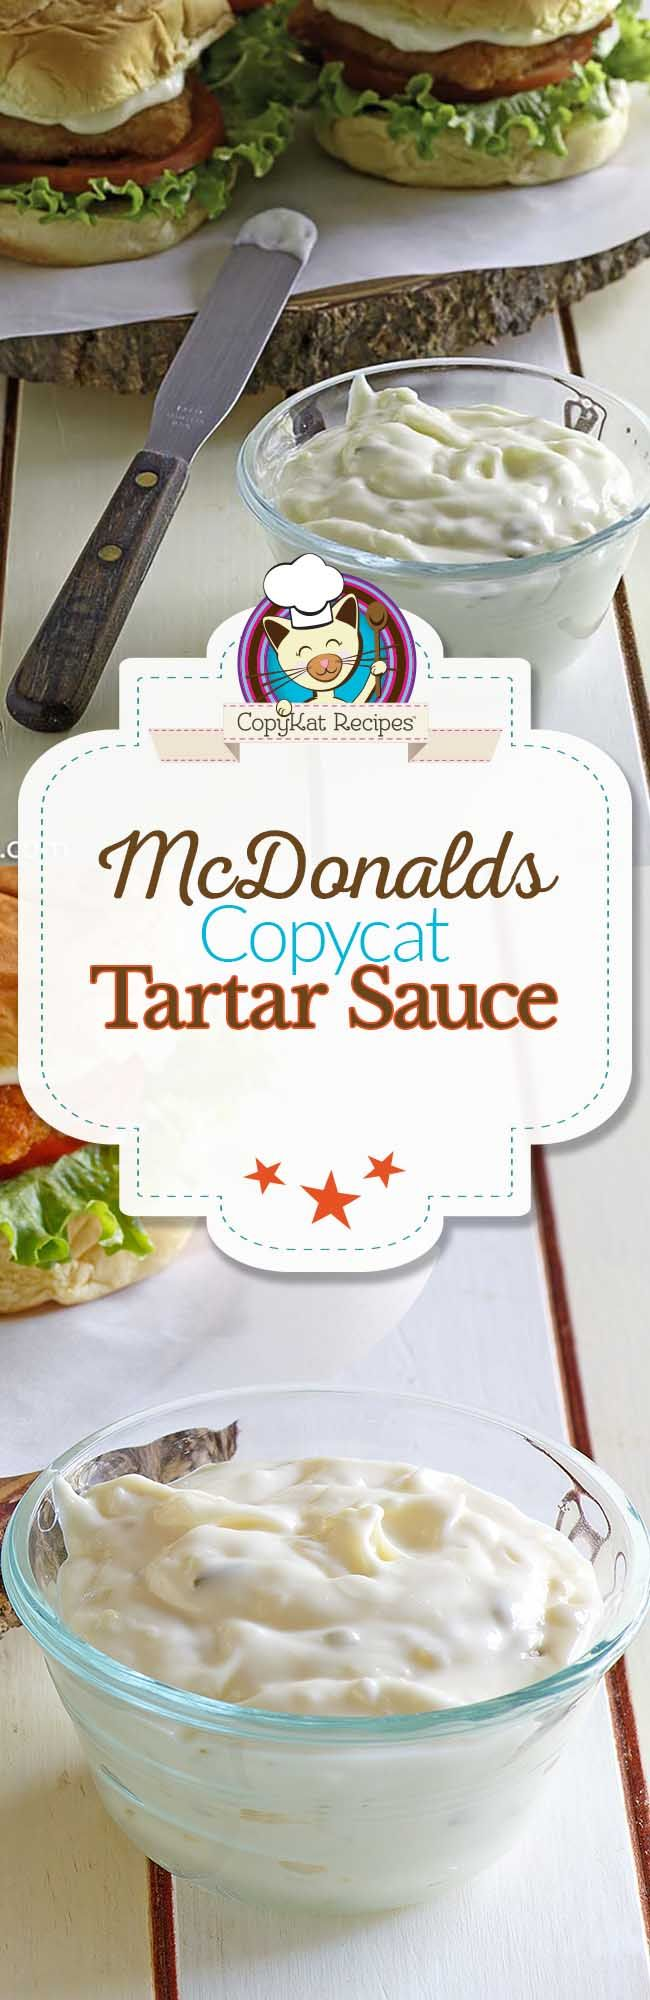 You can recreate the famous McDonalds tartar sauce at home with this easy copycat recipe.